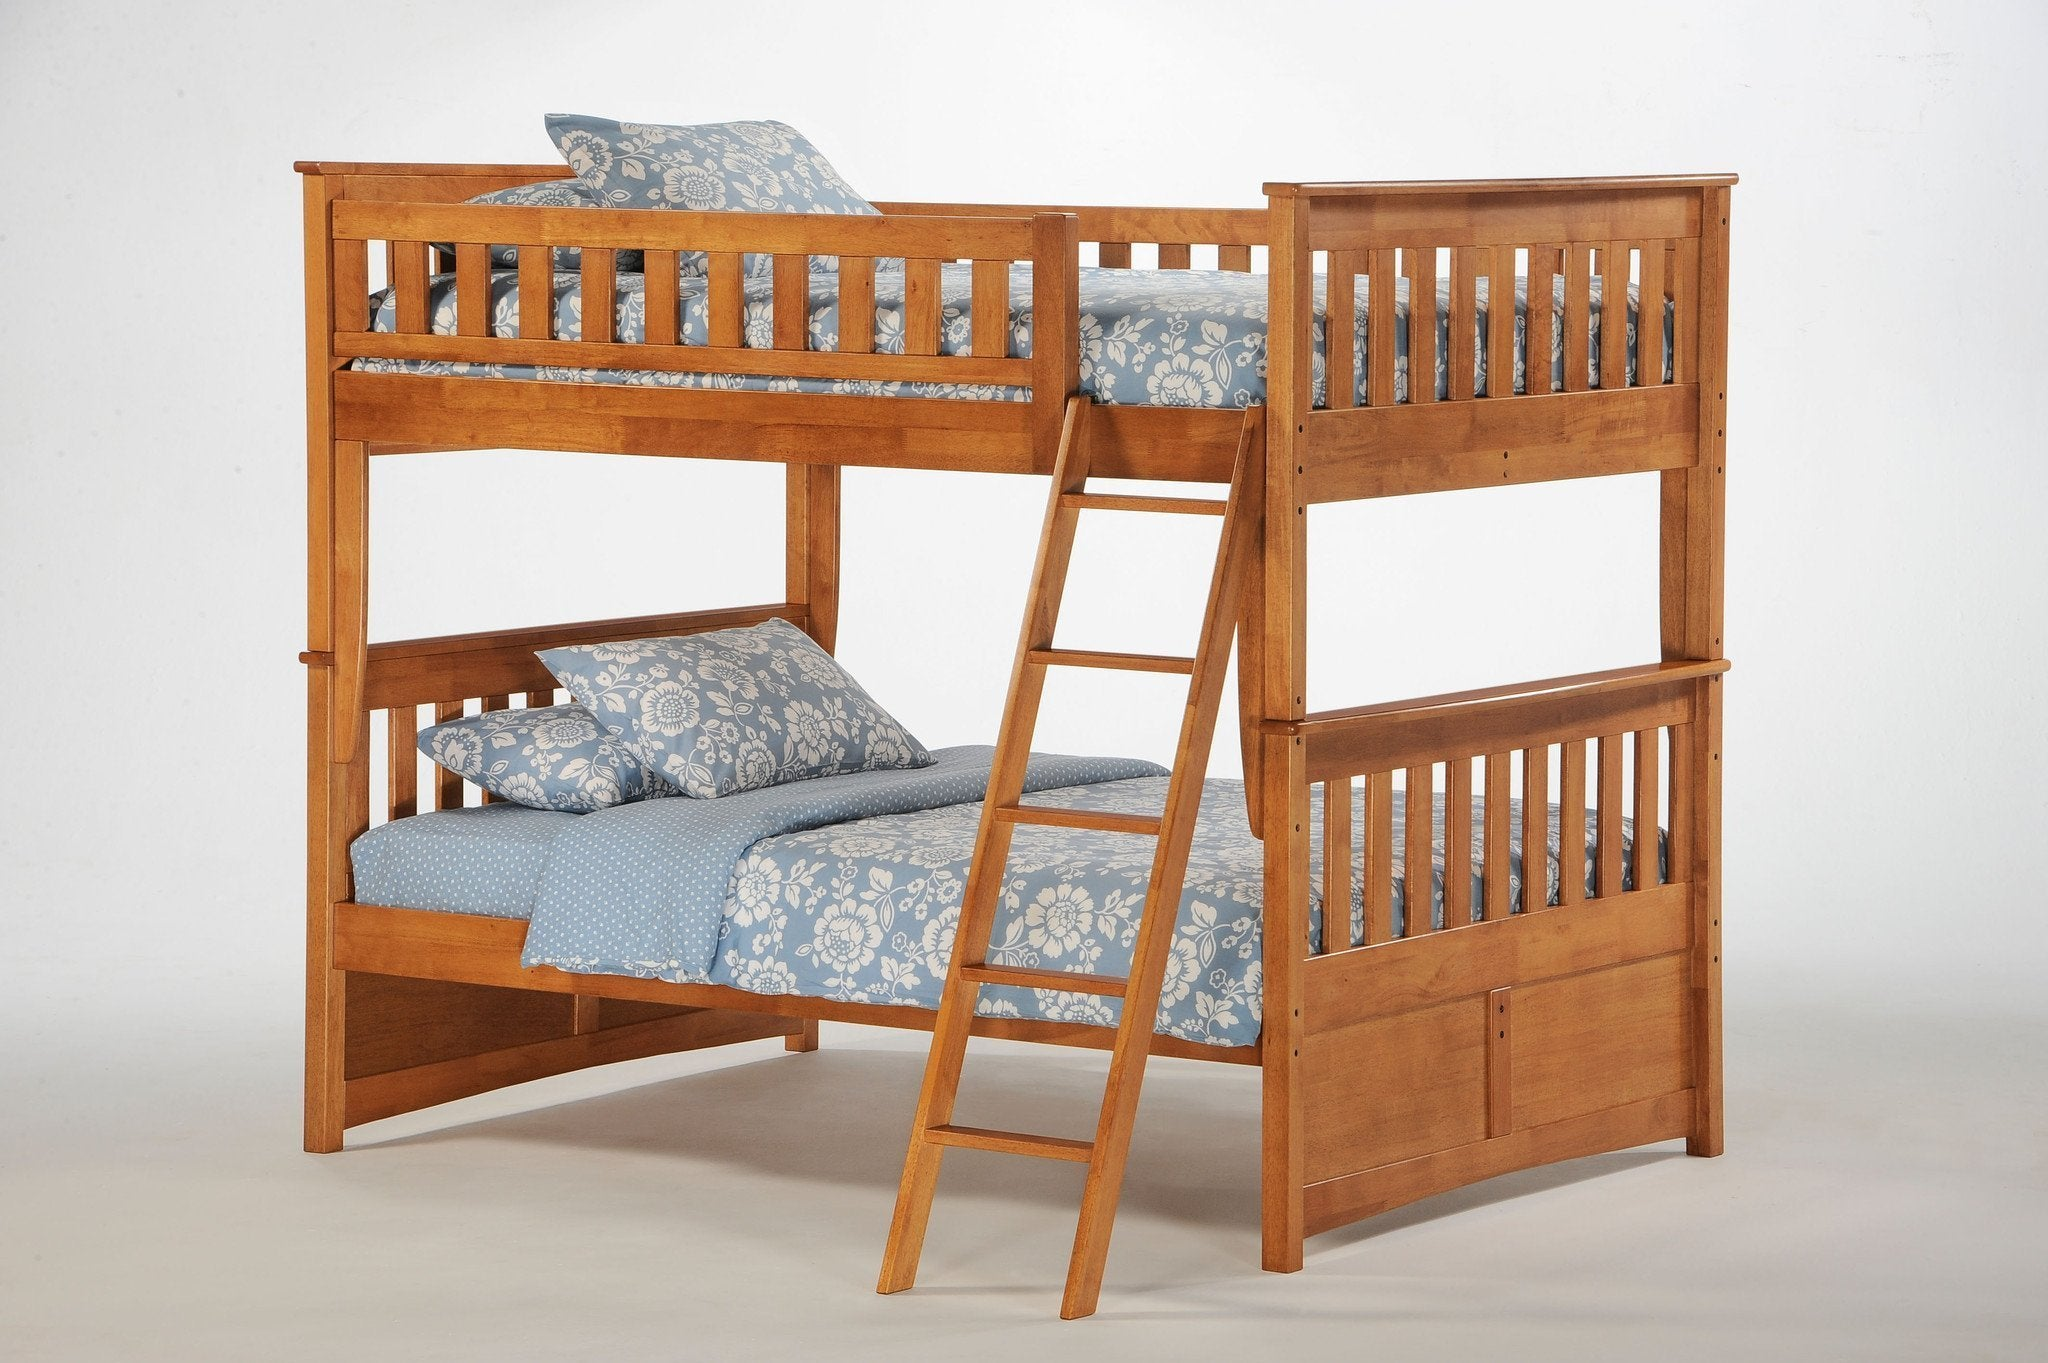 Bunk Beds Pictures